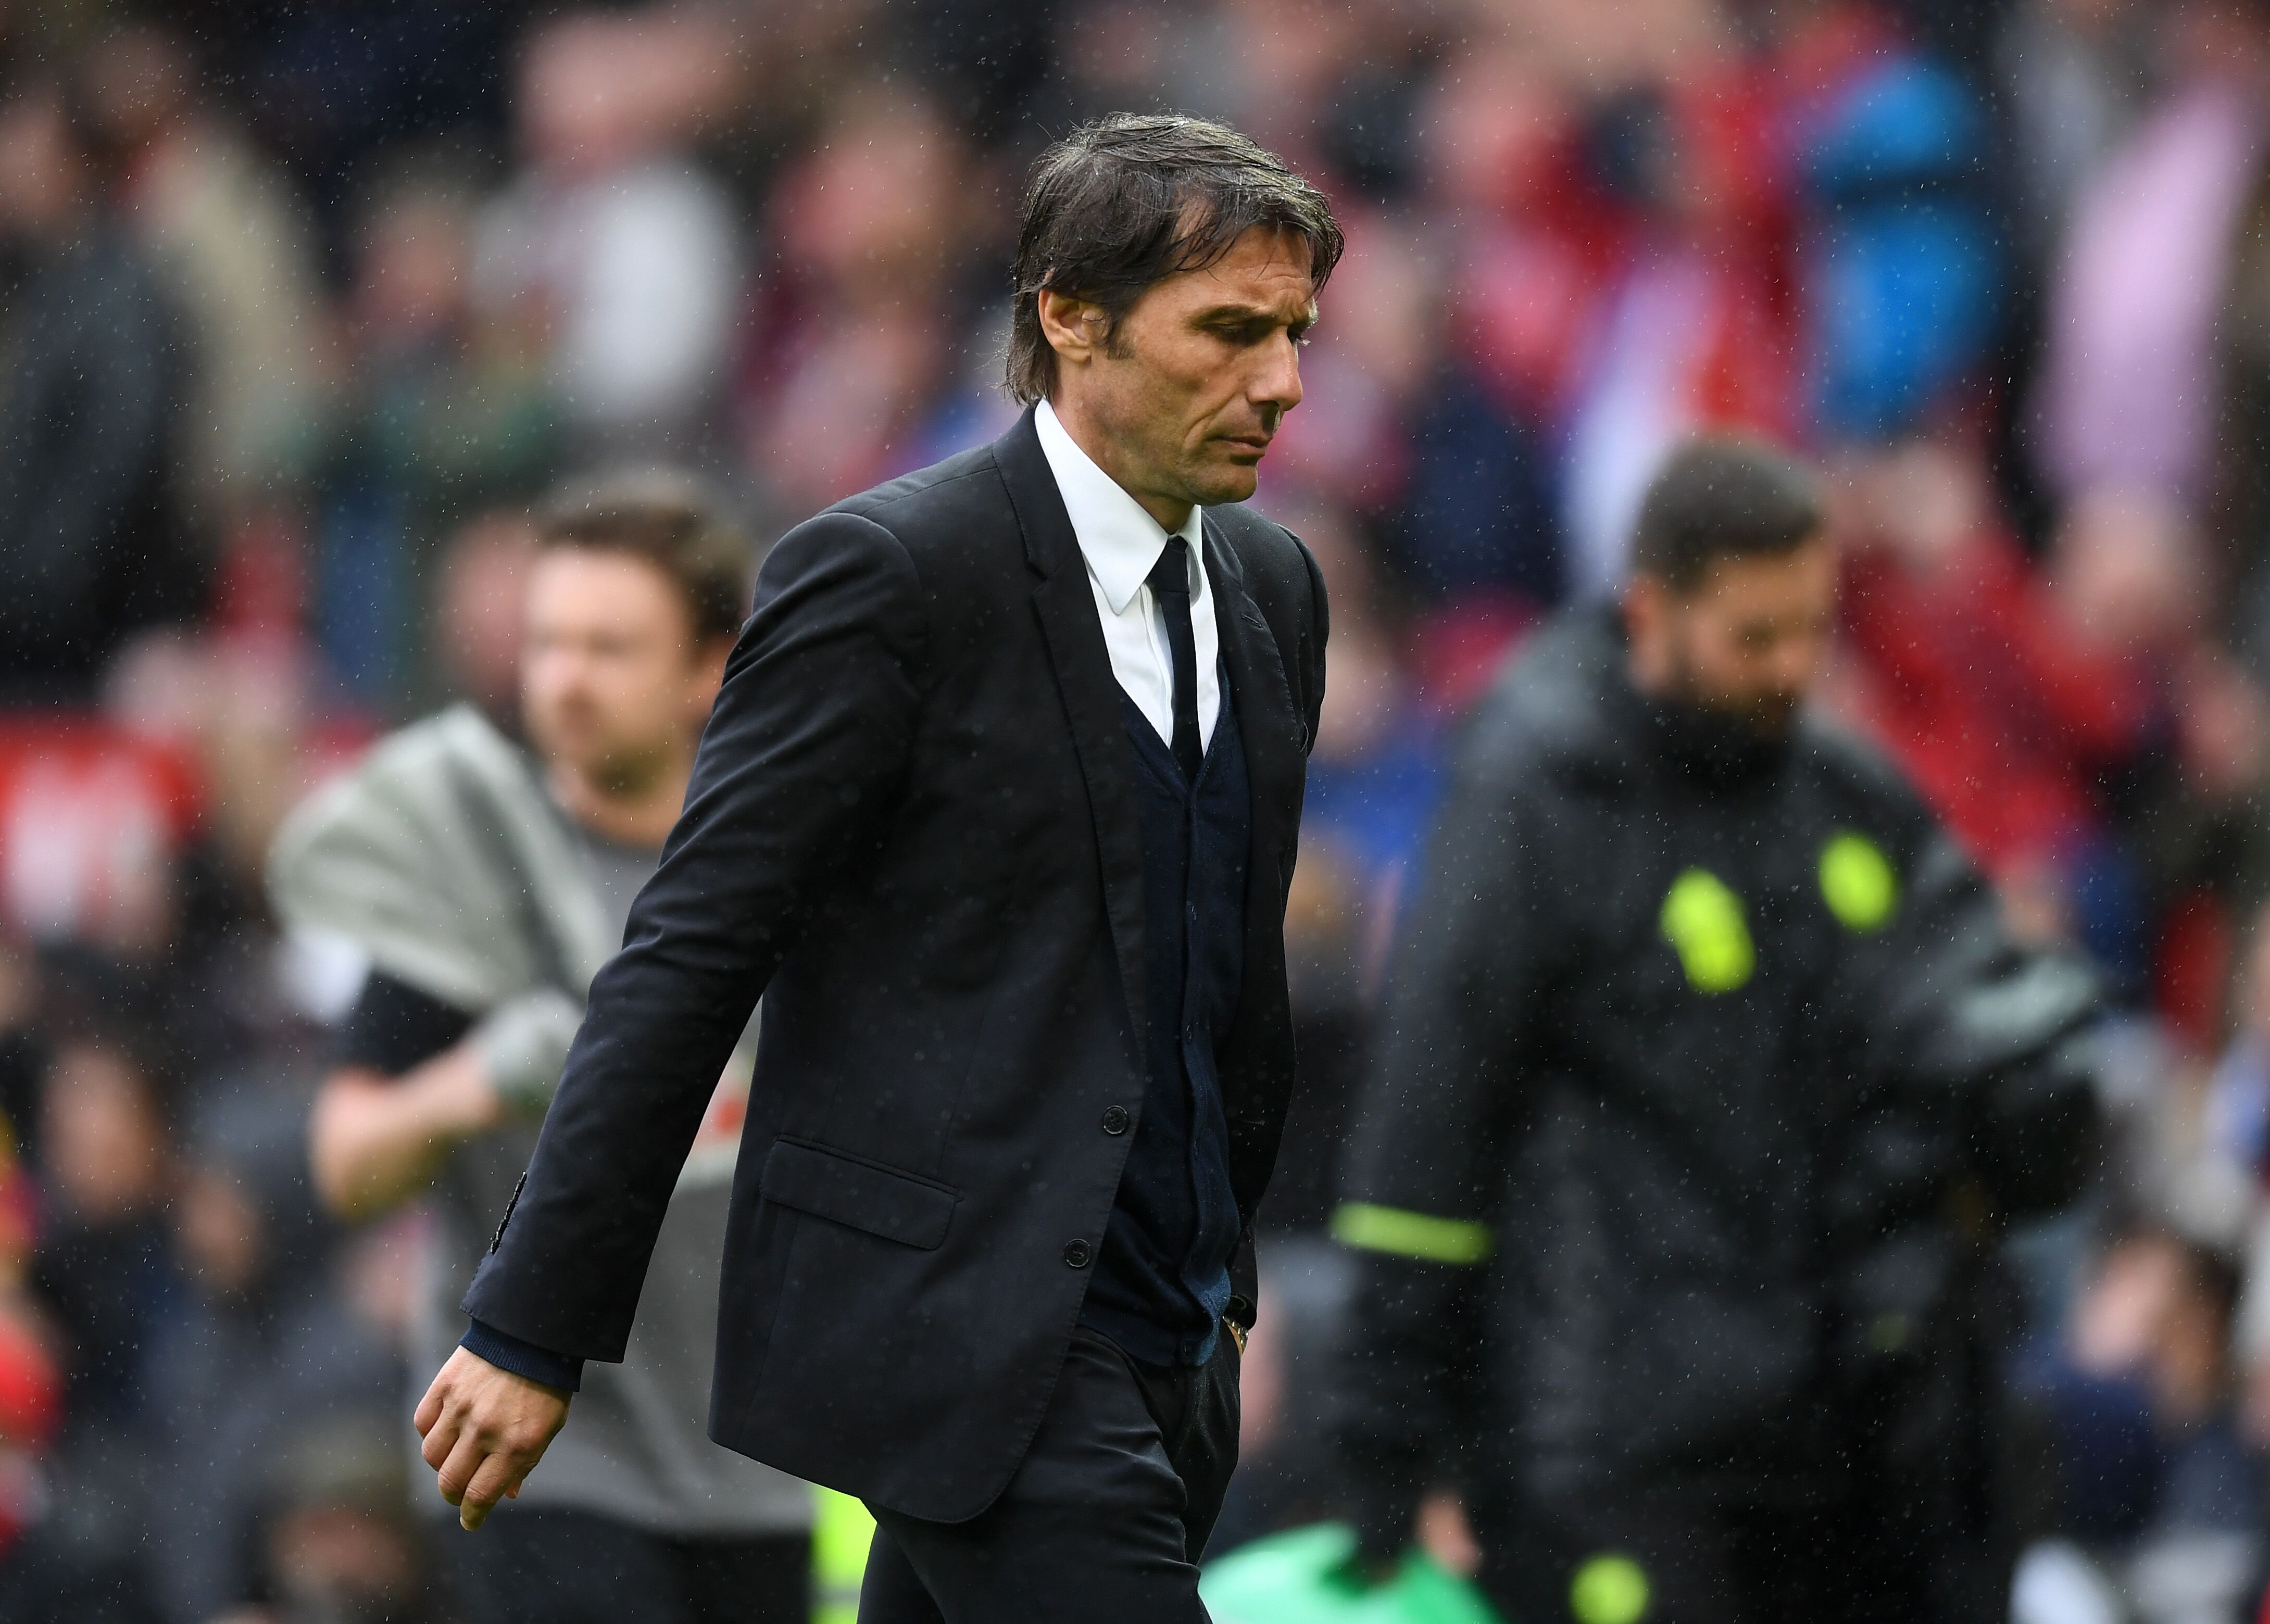 Image result for pic of antonio conte waiving